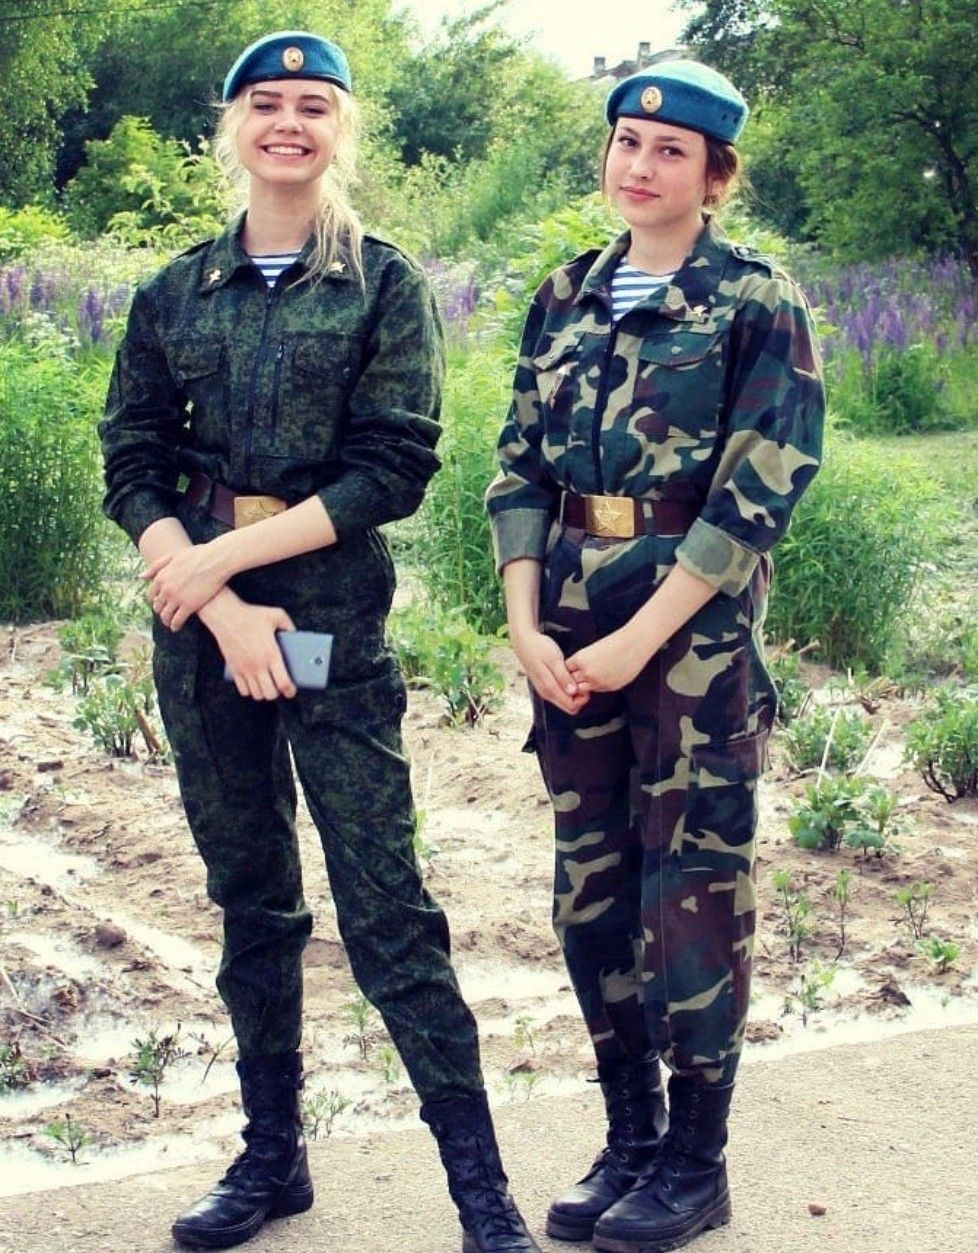 Pin By Hakan Falez On Moi Sohranennye Materialy In 2020 Female Soldier Women Female